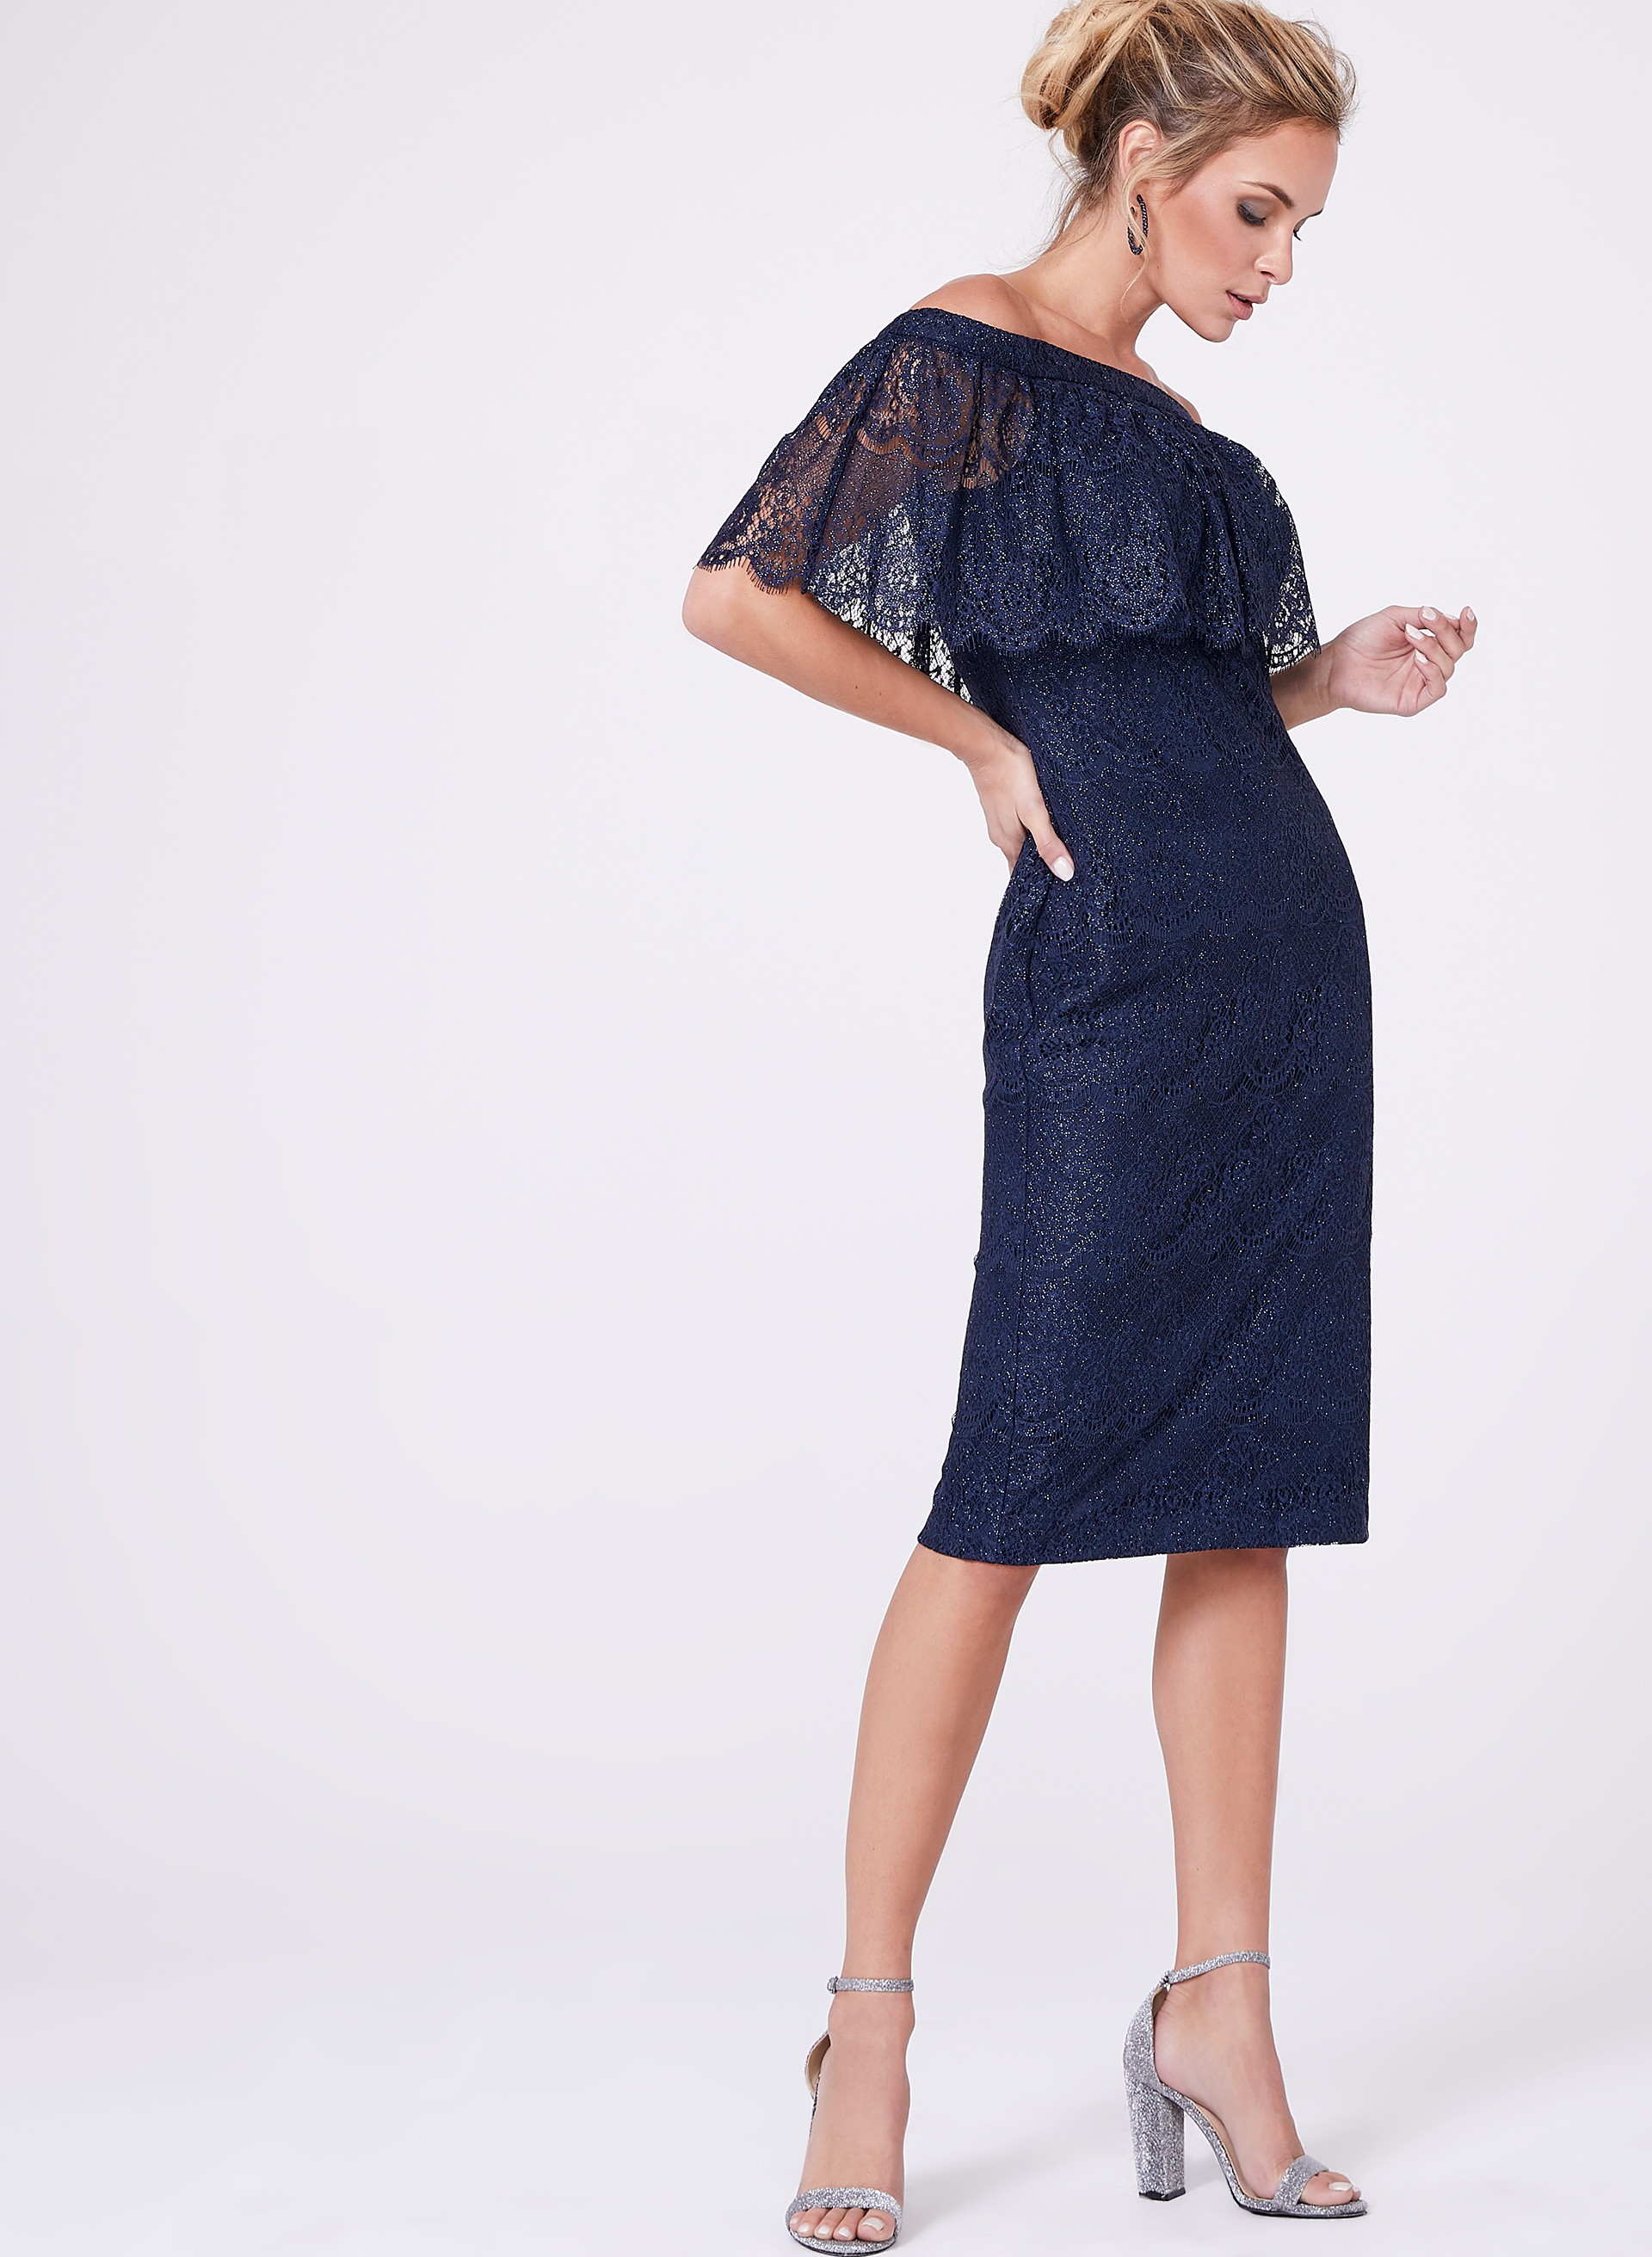 Dress up 247 login - Cachet Off The Shoulder Lace Dress